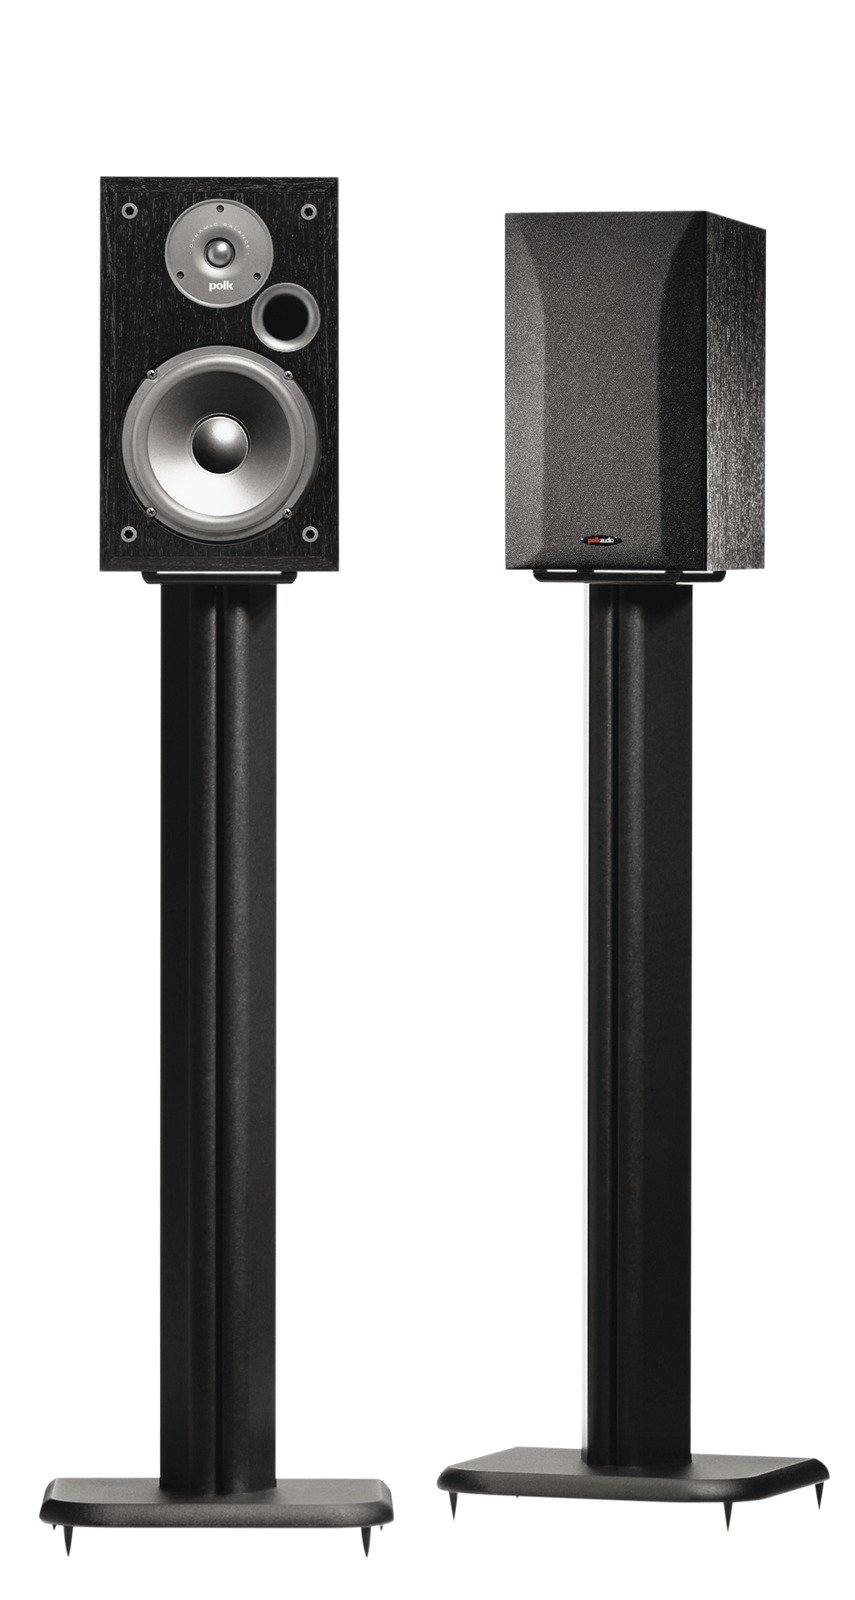 SANUS BF31-B1 31'' Speaker Stands for Bookshelf Speakers up to 20 lbs - Black - Set of 2